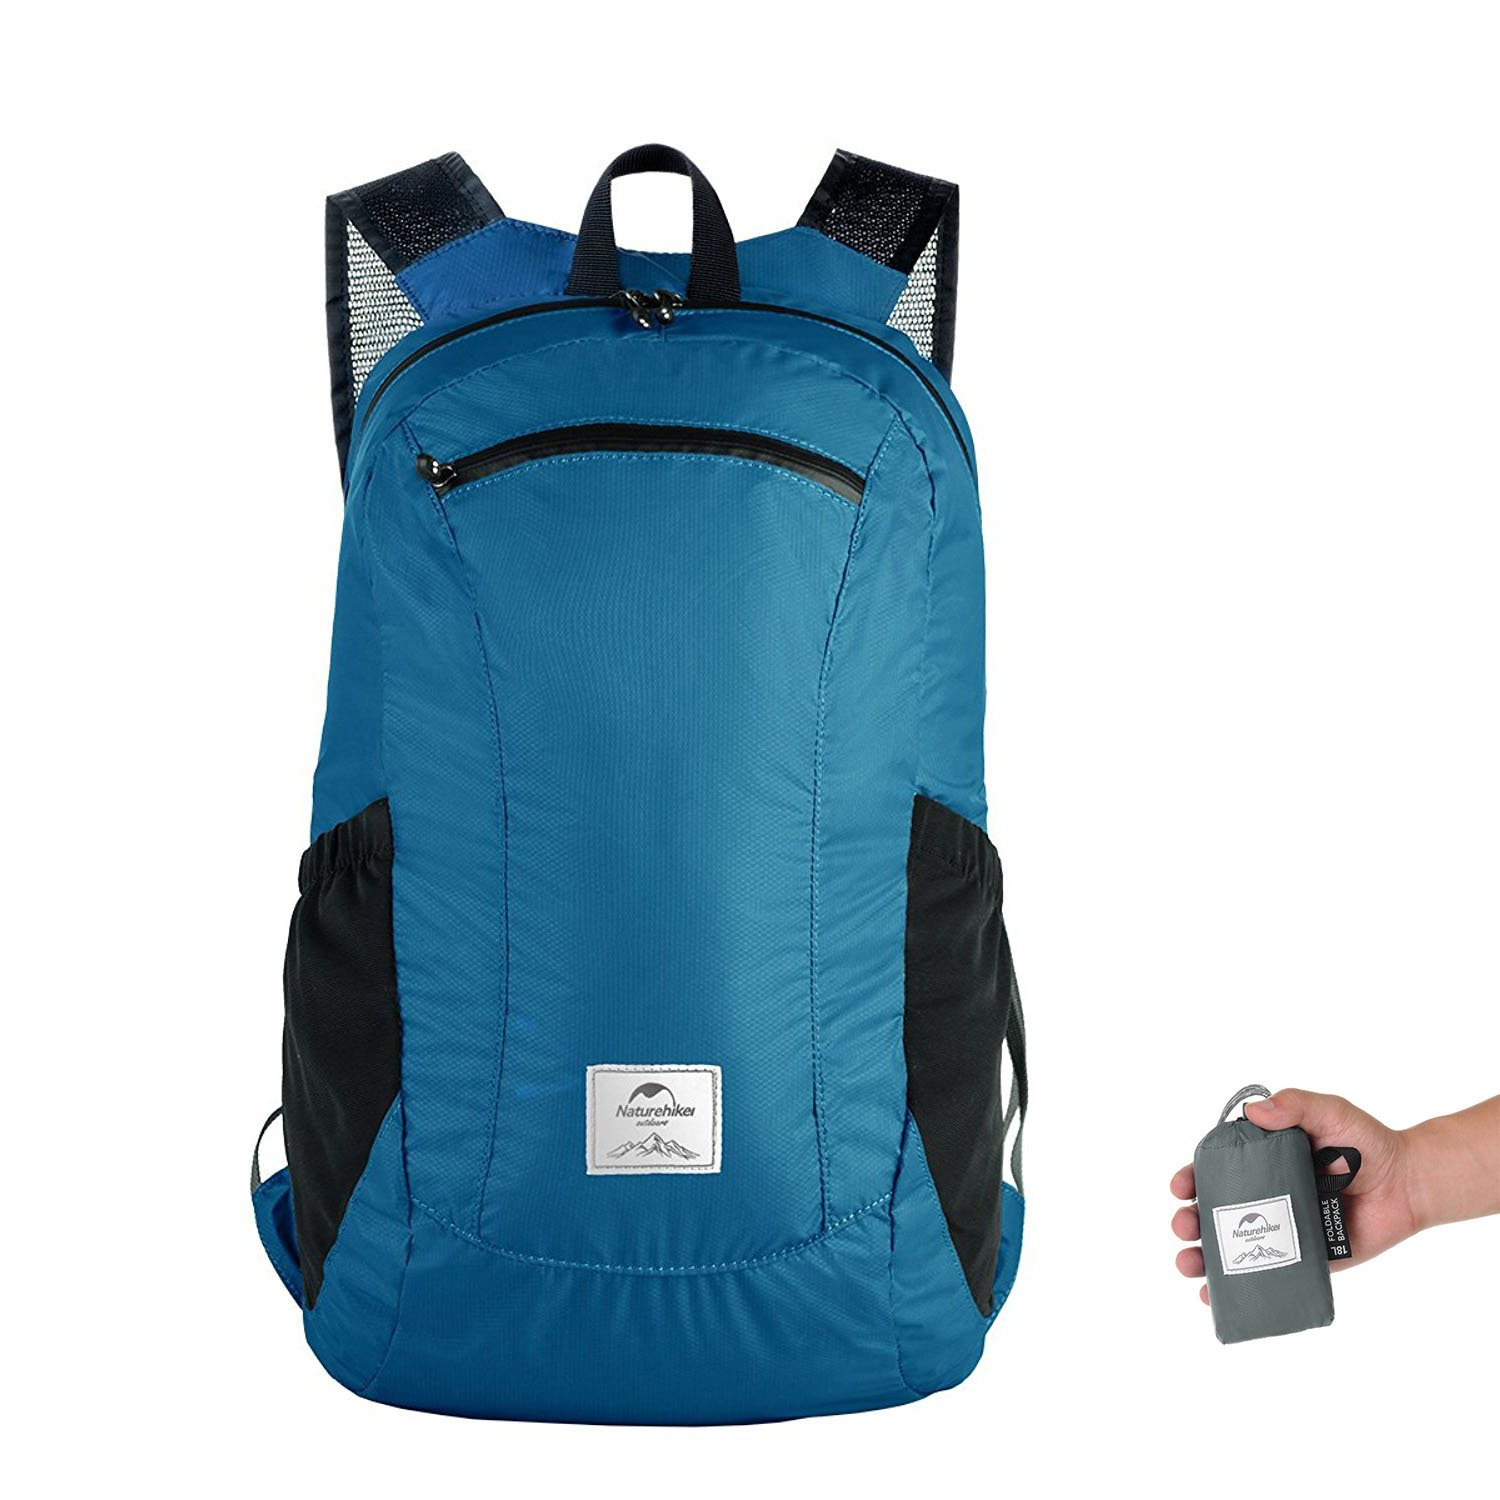 Naturehike 18L - The Most Durable Lightweight Packable Backpack, Water Resistant Travel Hiking Daypack For Men & Women delicate